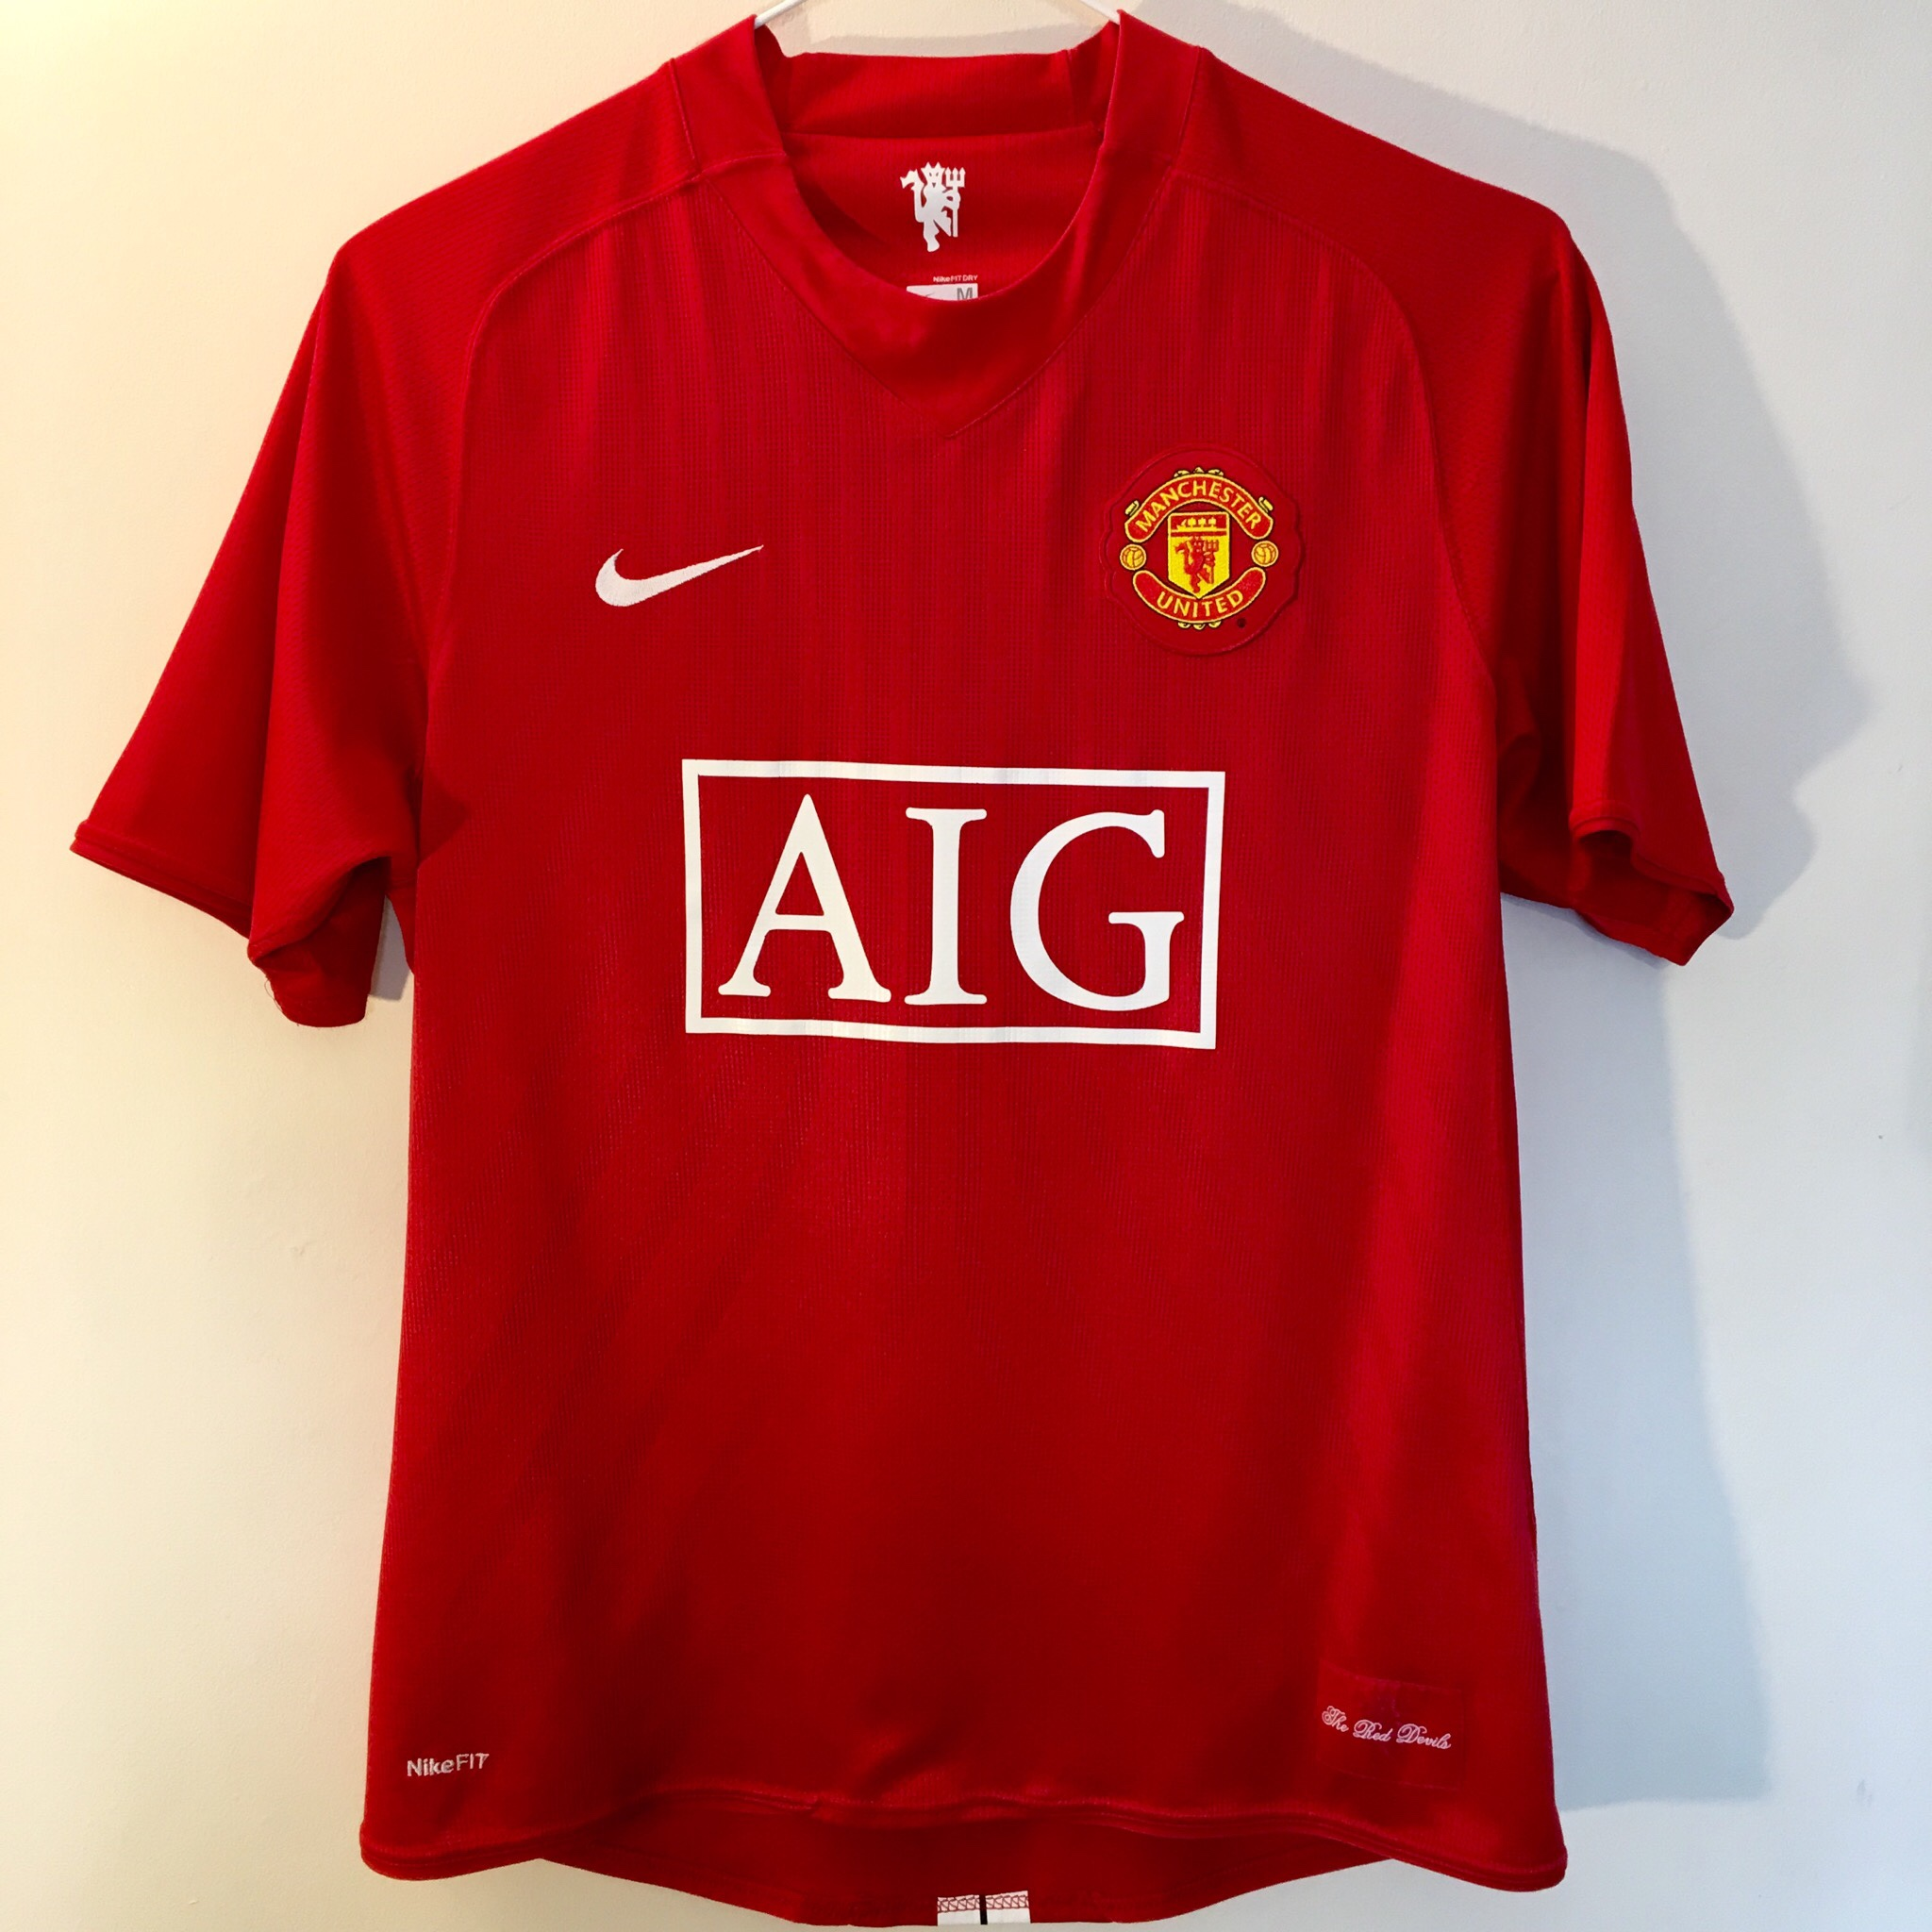 buy online a538c 9f8d0 MANCHESTER UNITED 1998-99 Nike / AIG Red Football ...